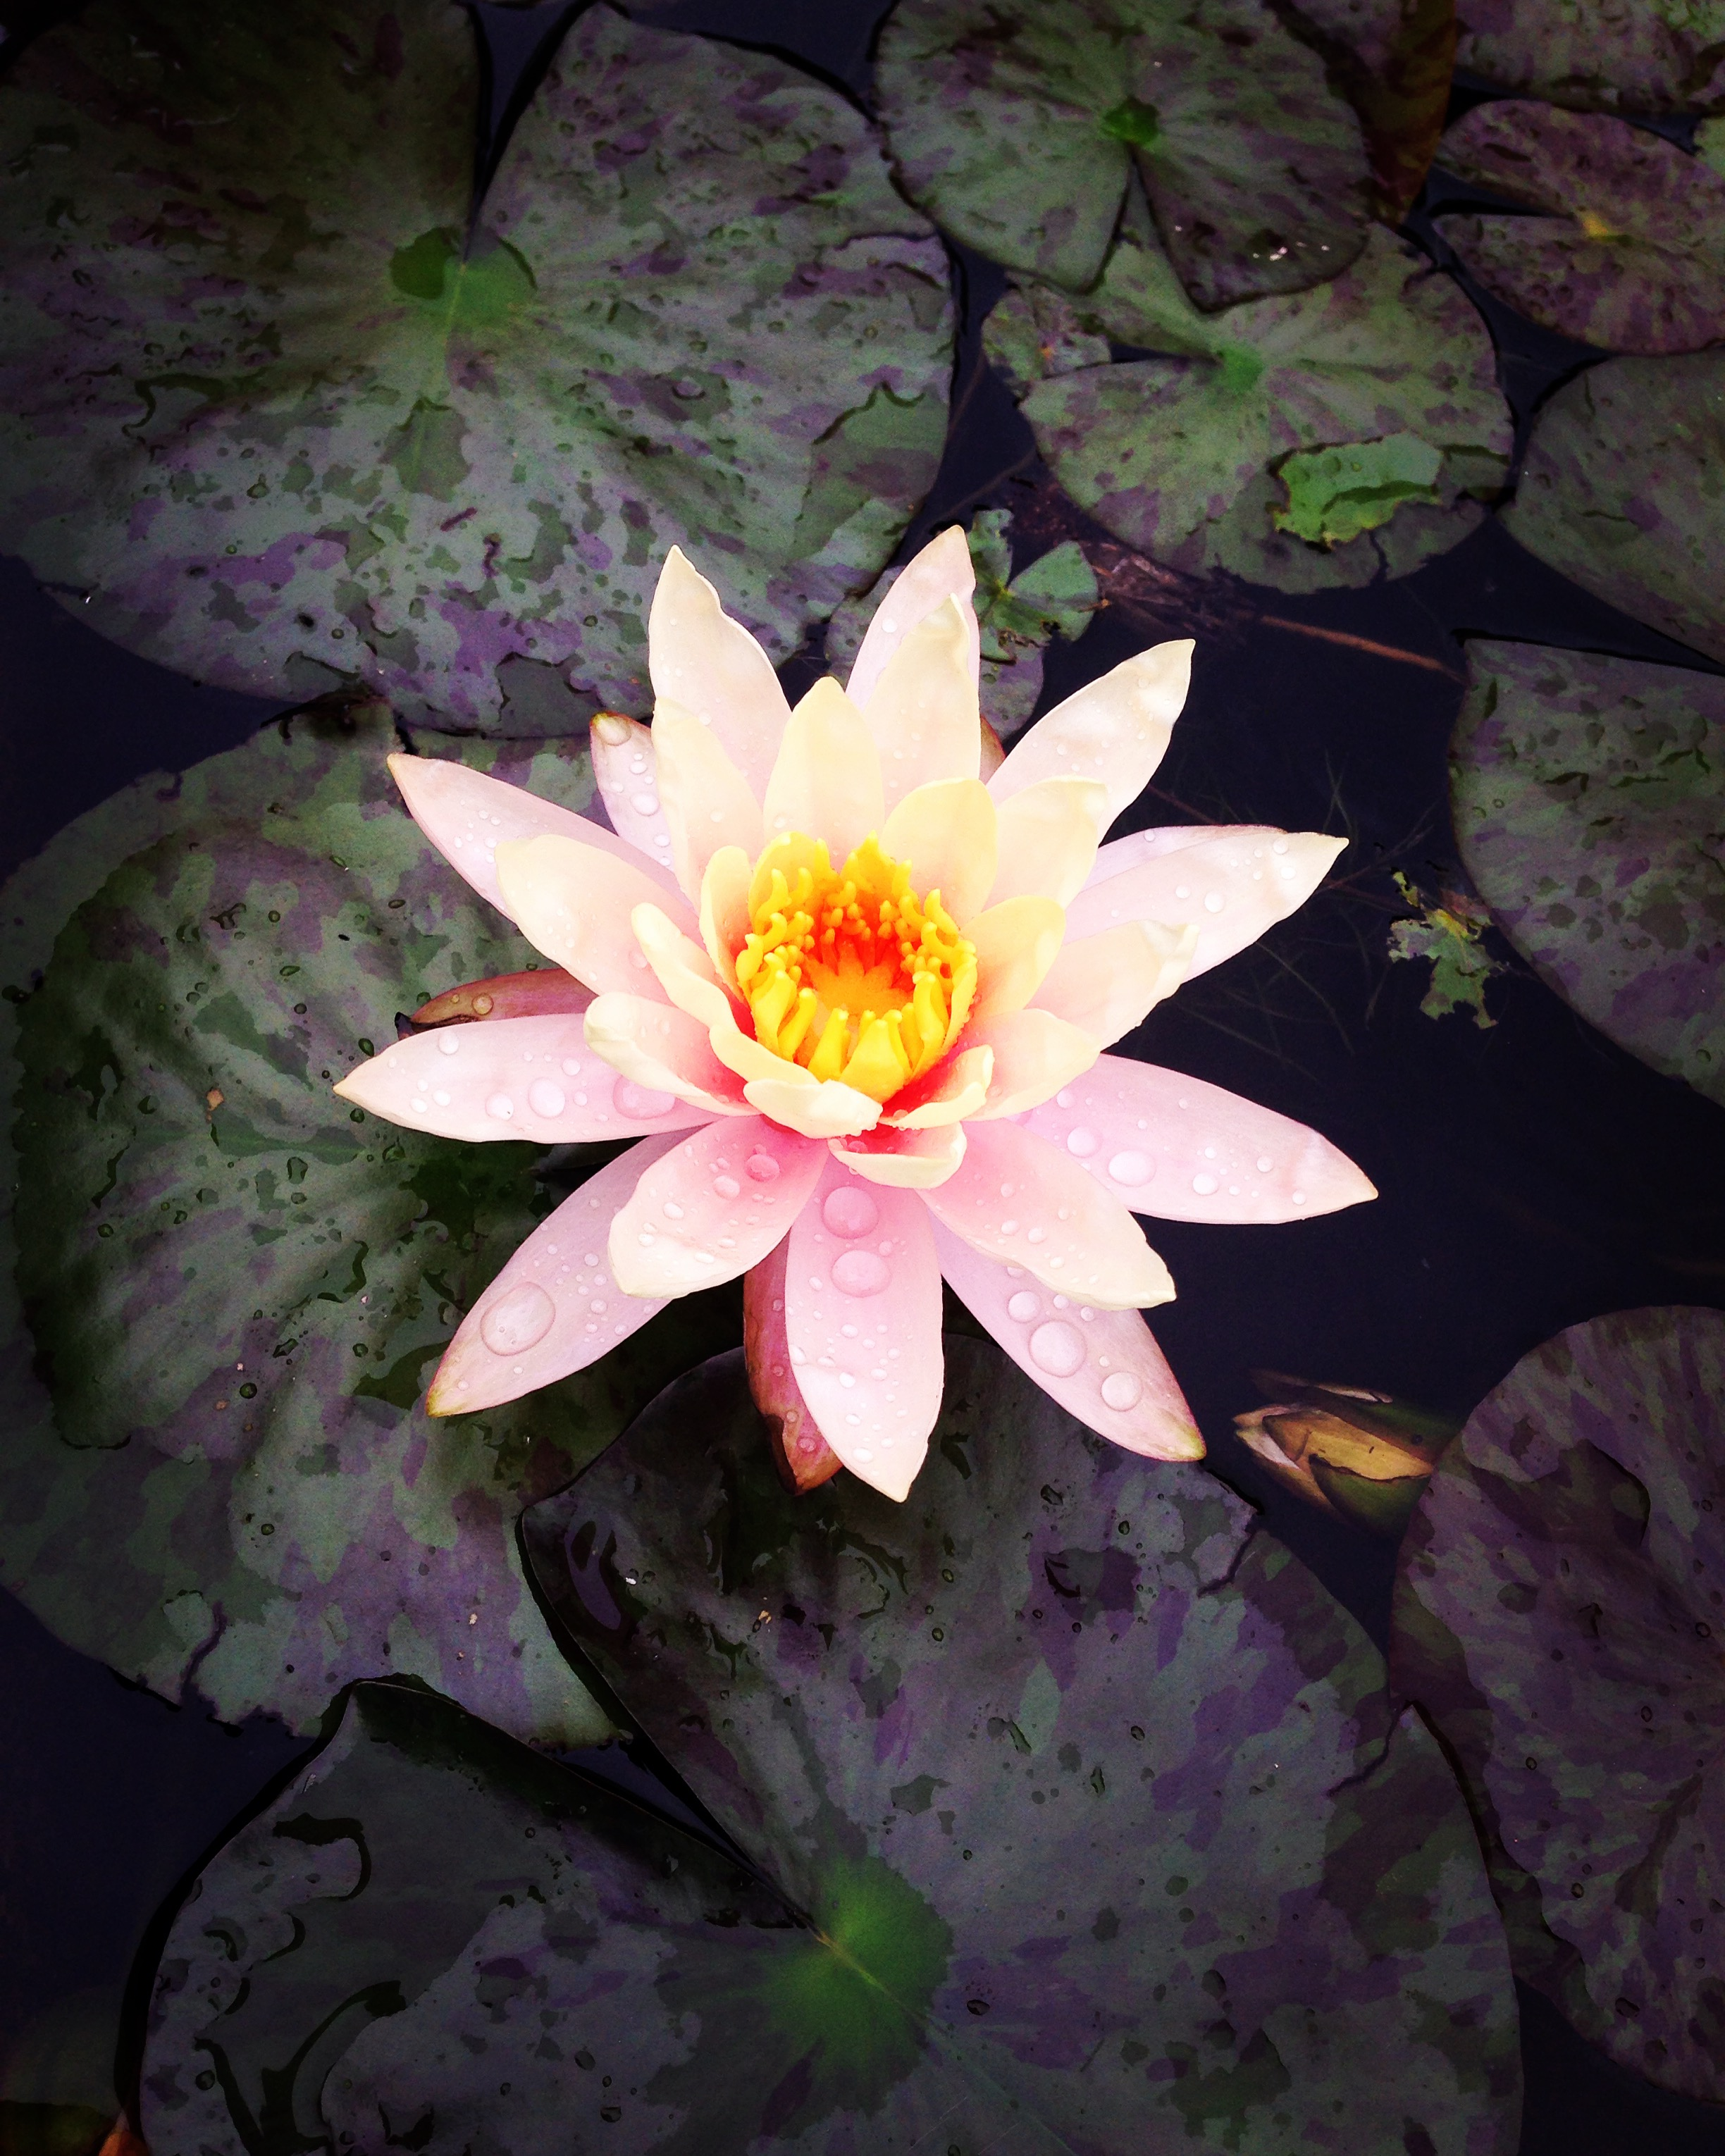 Nymphaea at the Botanical Garden of Padua, Italy